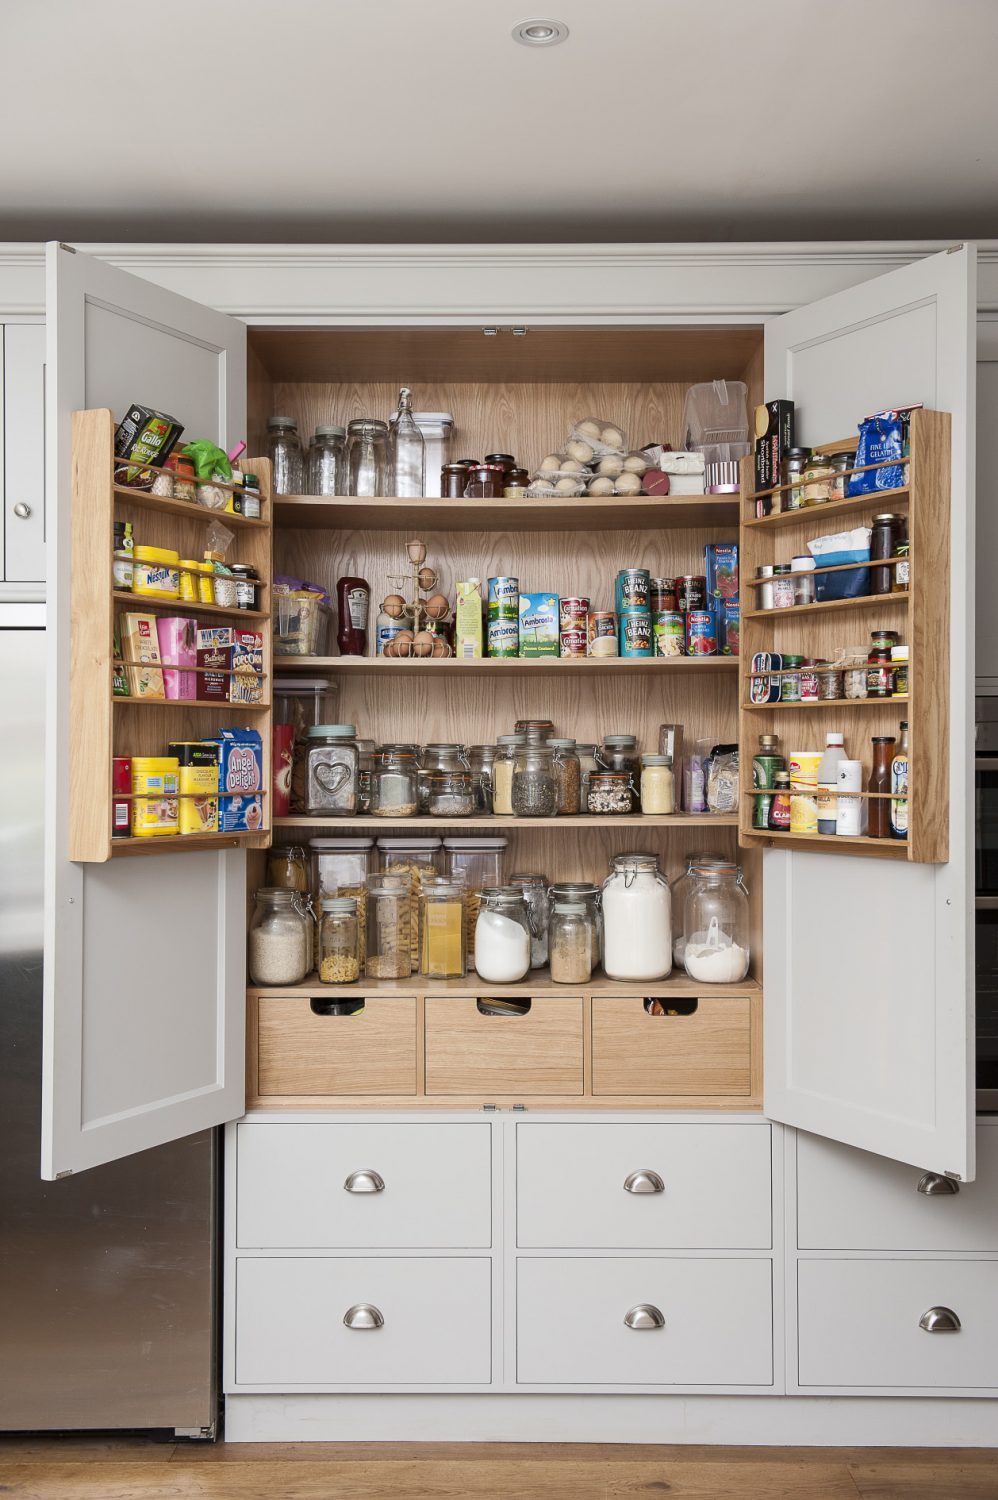 The immaculate larder is a shrine to organisation, with clearly labelled jars next to neat groupings of tins and everyday essentials